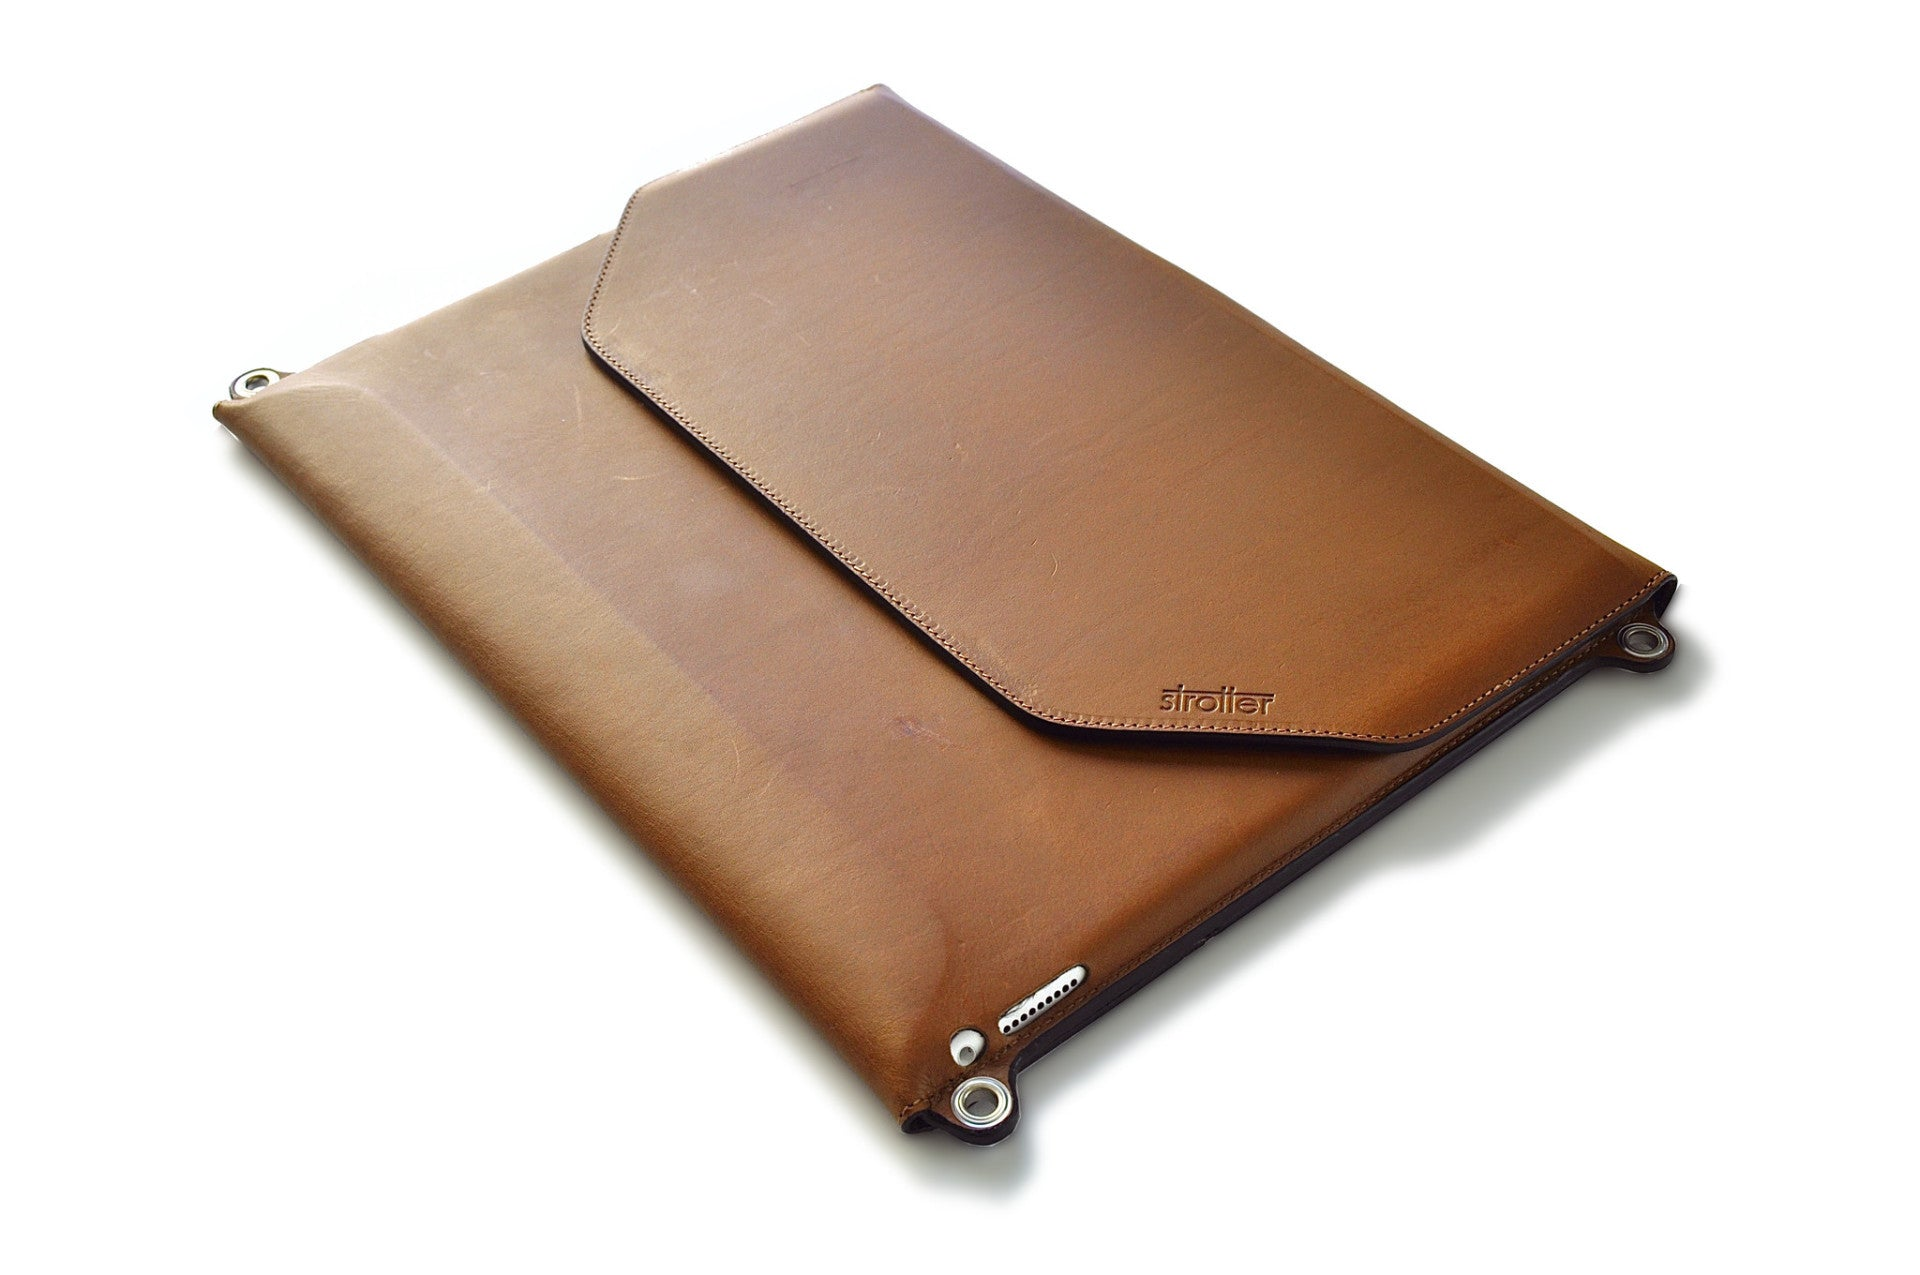 Cuoio leather iPad case